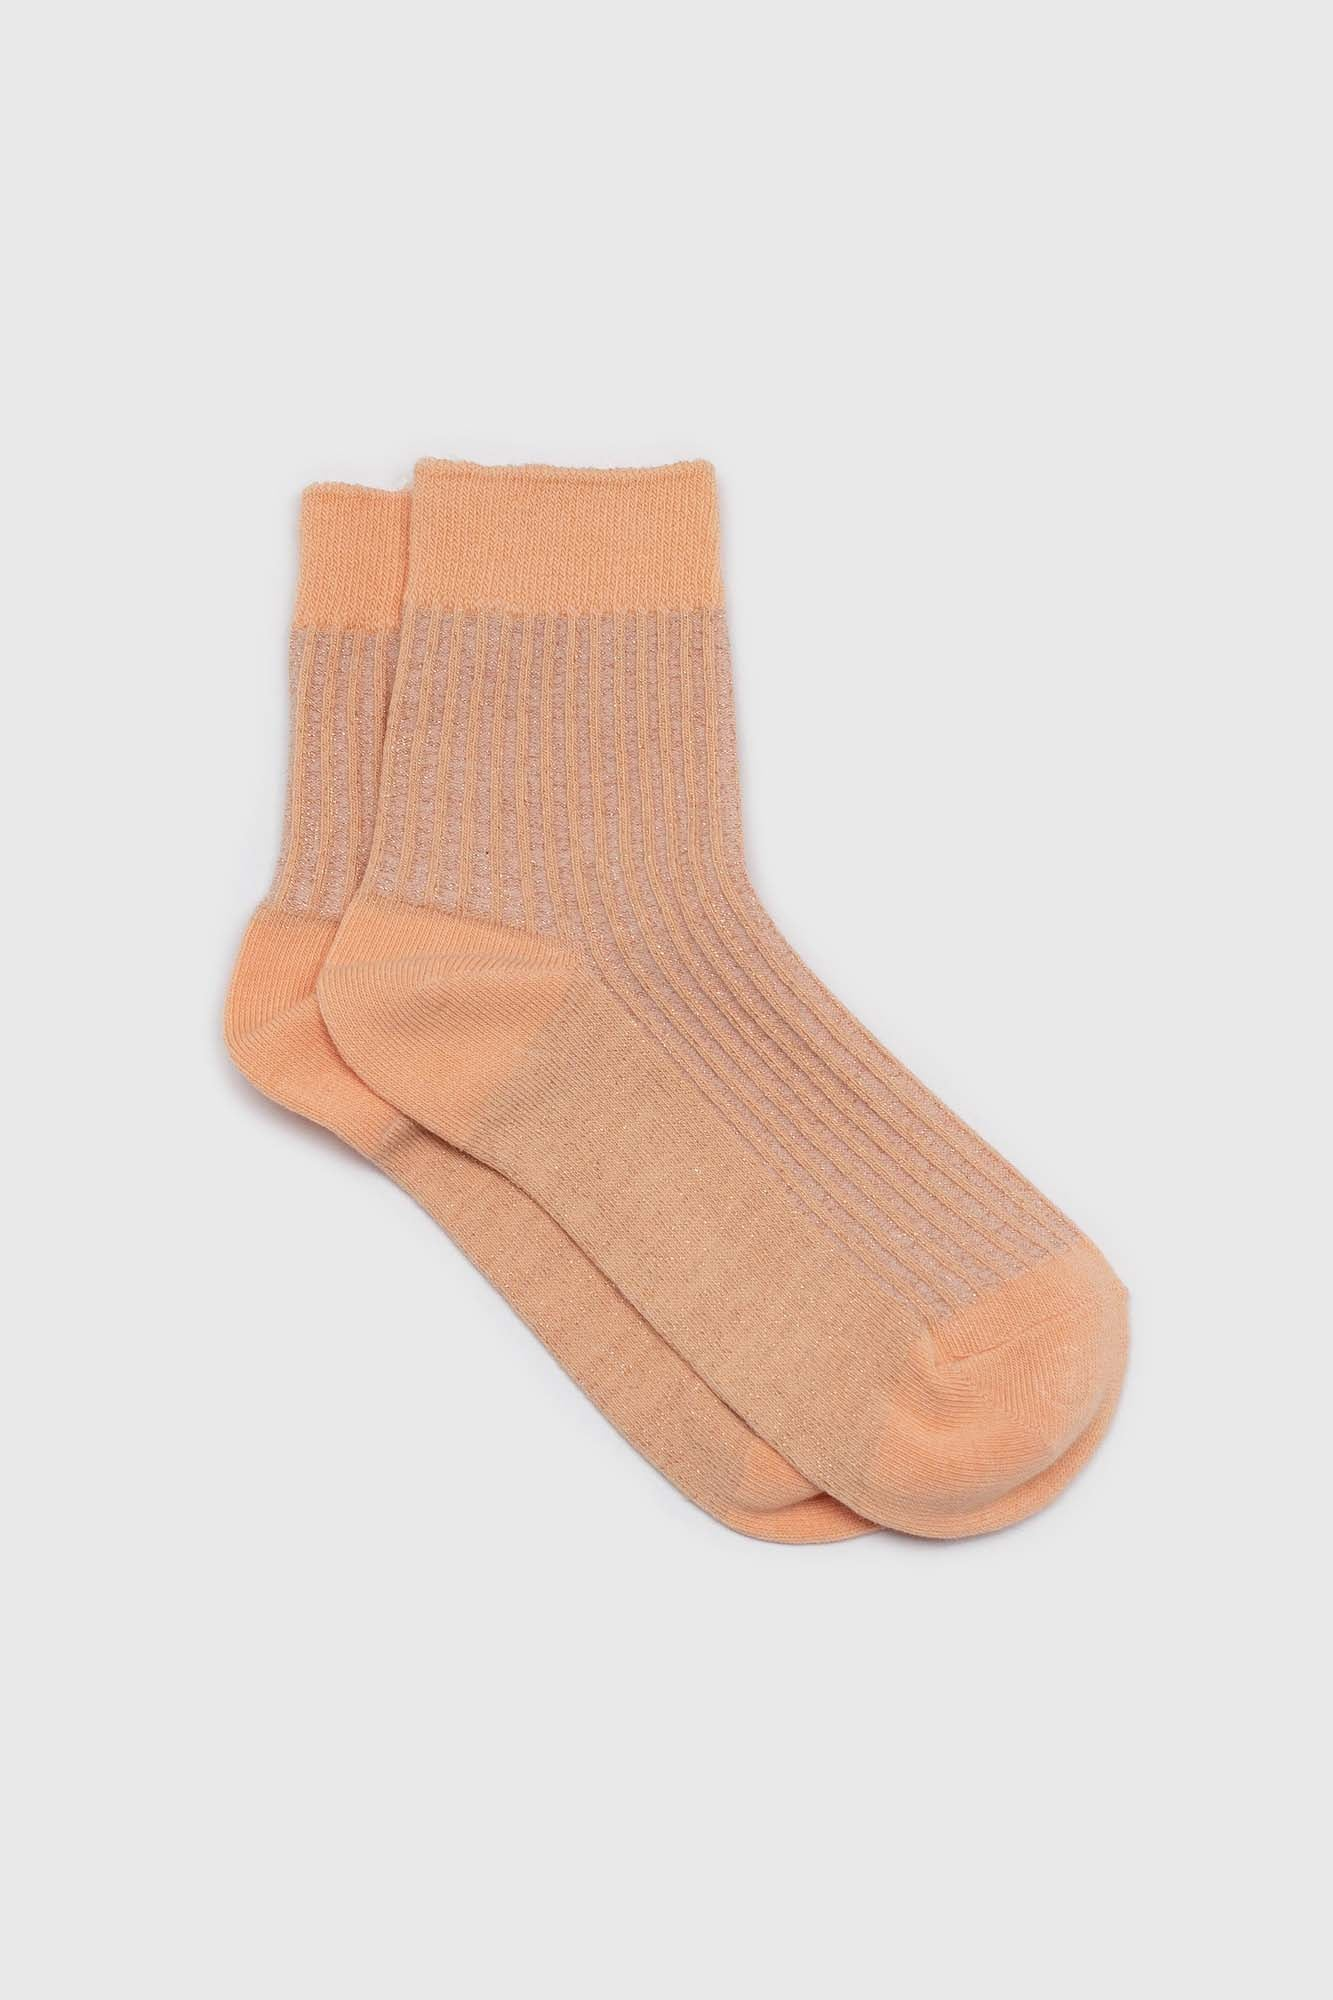 Sherbet orange metallic vertical stripe socks1sx